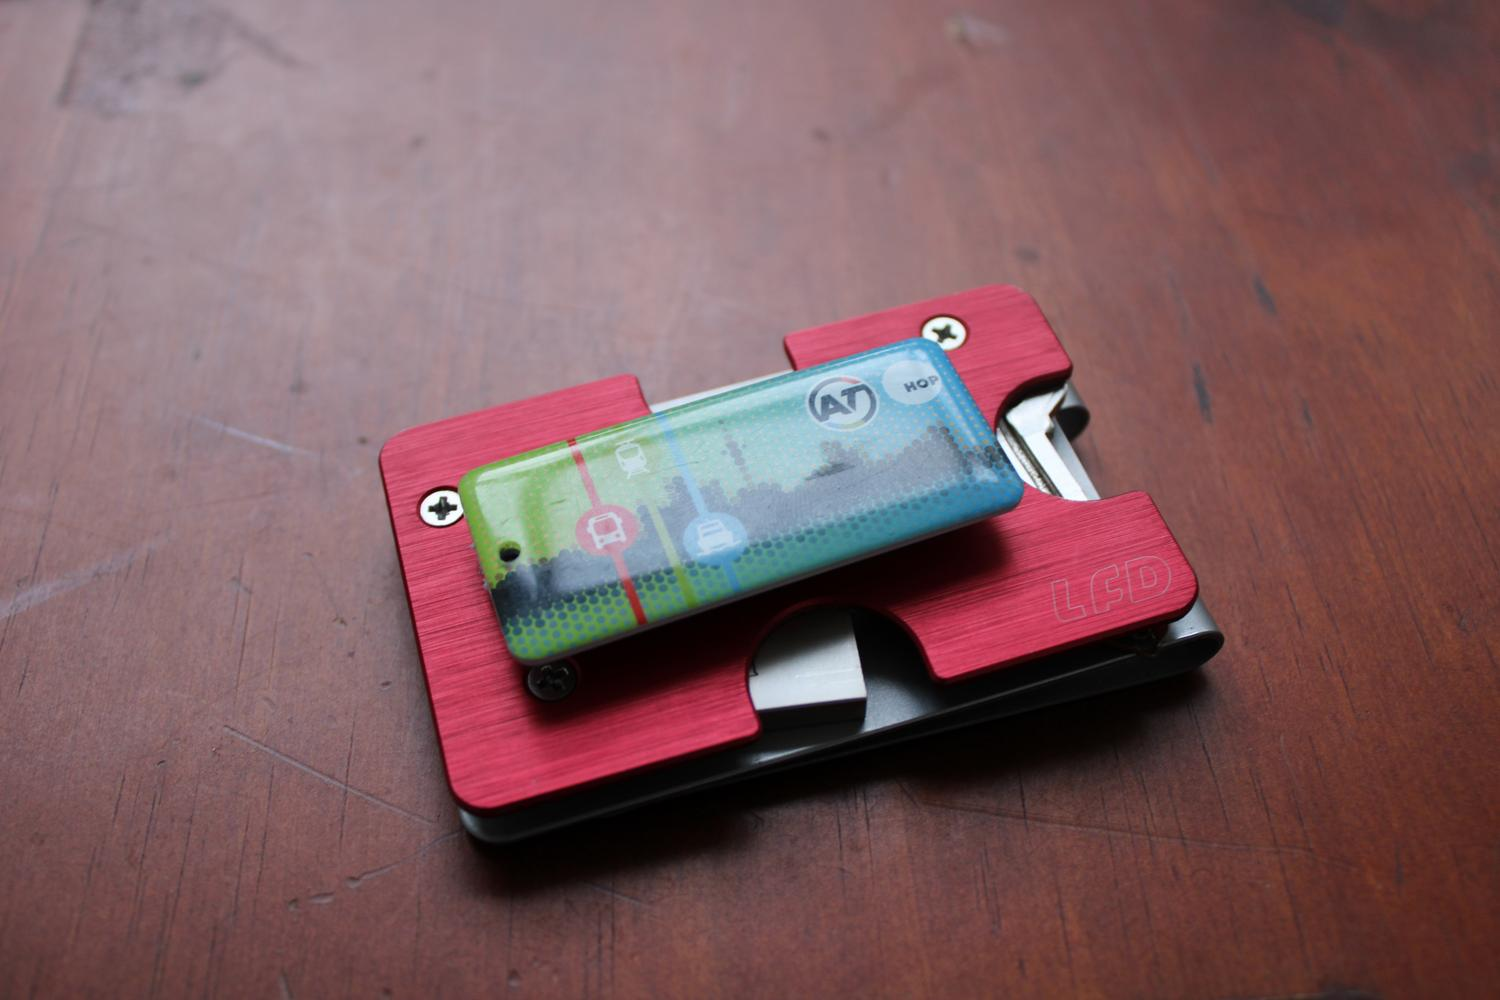 An aerial photo of the assembled metal wallet sitting on a table surface. It is positioned right side up this time showing the red top plate. On top of the red plate is the small badge sized transit card, seemingly hovering in place. It's actually attached to a velcro strip although you can't visually tell that from the photo.